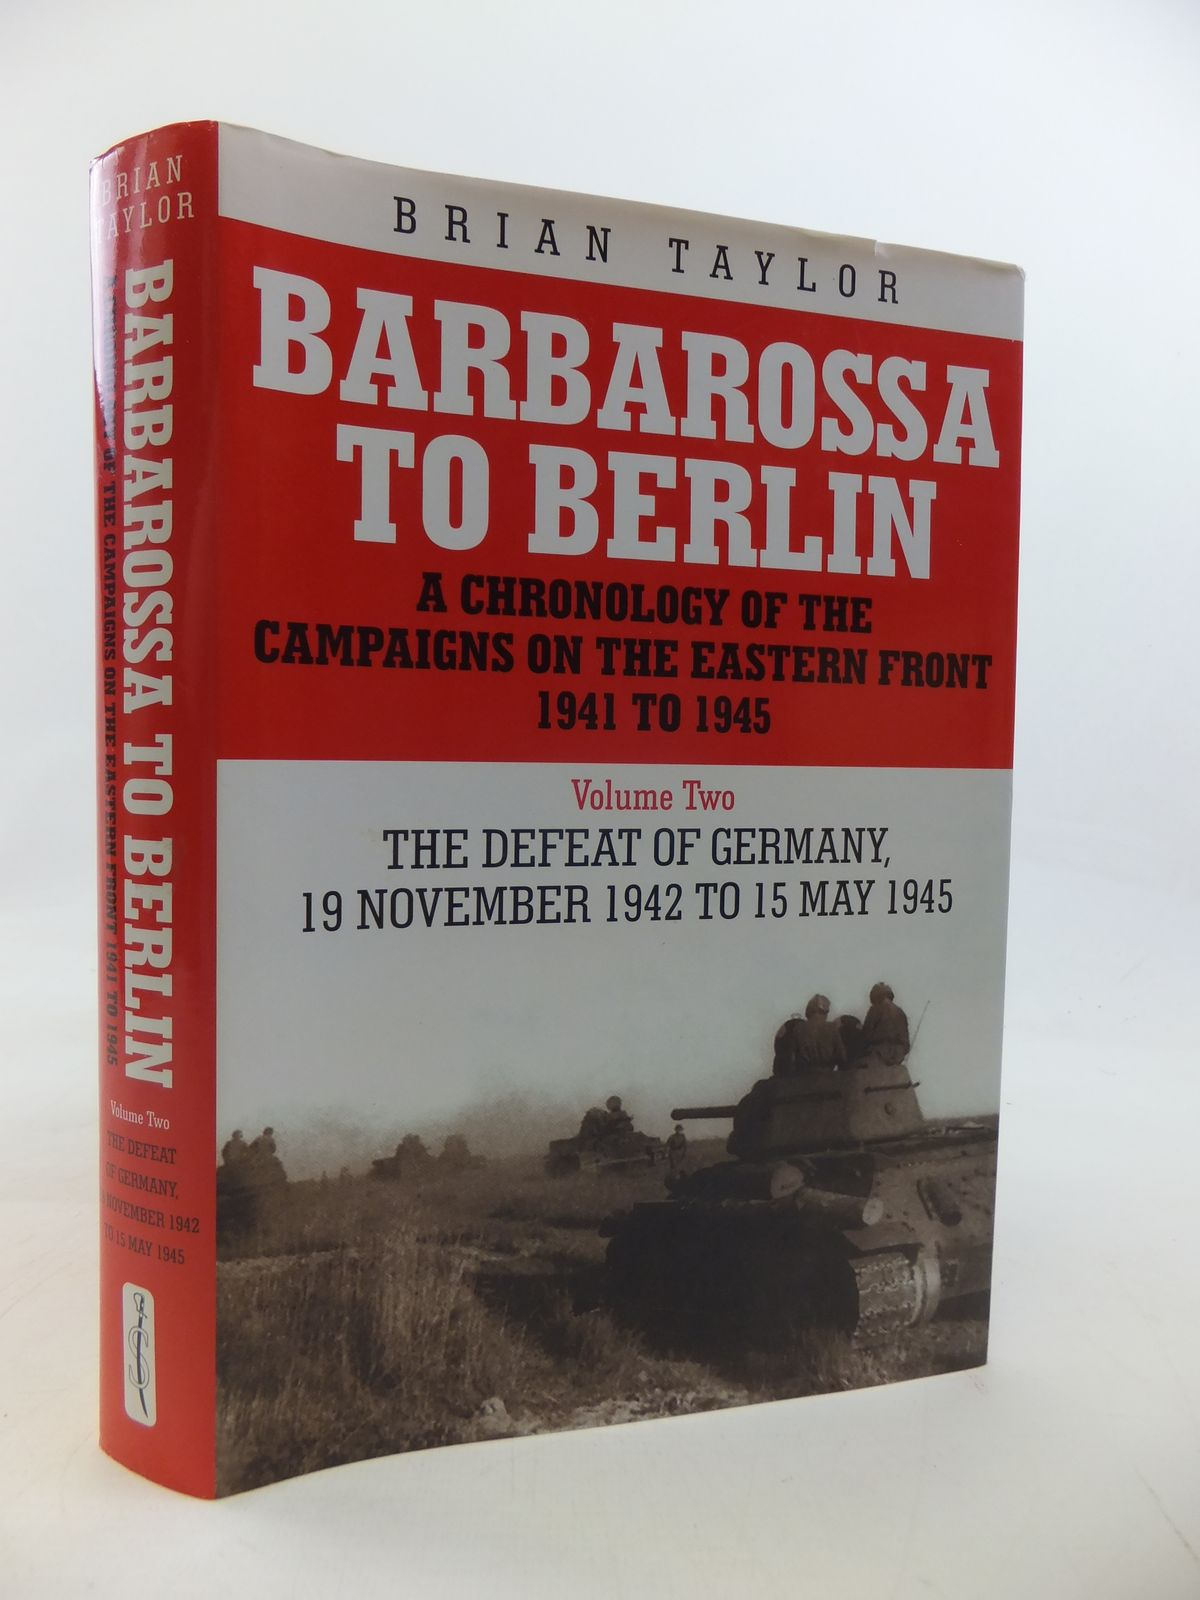 Photo of BARBAROSSA TO BERLIN A CHRONOLOGY OF THE CAMPAIGNS ON THE EASTERN FRONT 1941 TO 1945 VOLUME TWO written by Taylor, Brian published by Spellmount Ltd. (STOCK CODE: 2115566)  for sale by Stella & Rose's Books